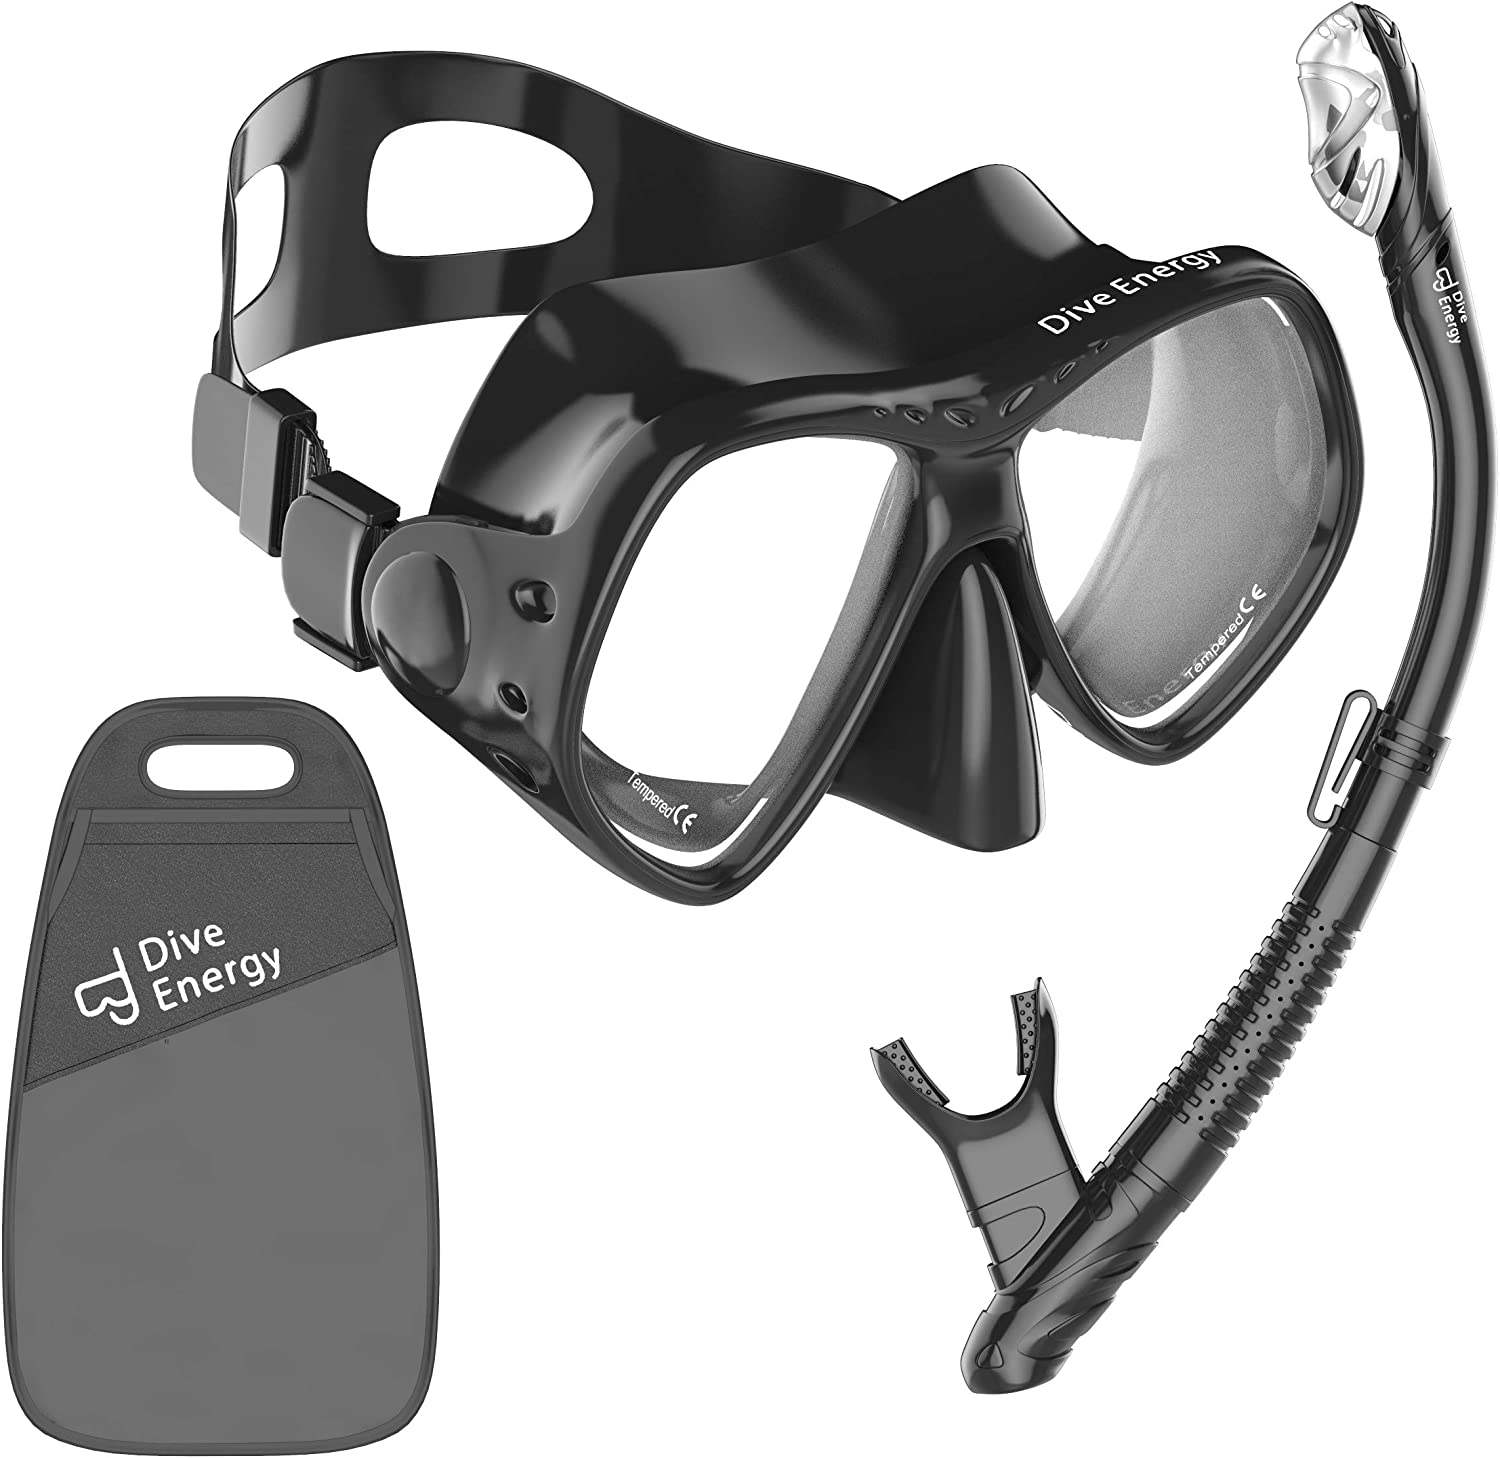 No Leaking Dry Snorkel Gear Easy Breathing and Adjustable Snorkeling Goggles for Adult Anti Fog Tempered Glass Lens Diving Mask with Mesh Bag MONKEY FOREST Snorkel Mask Set